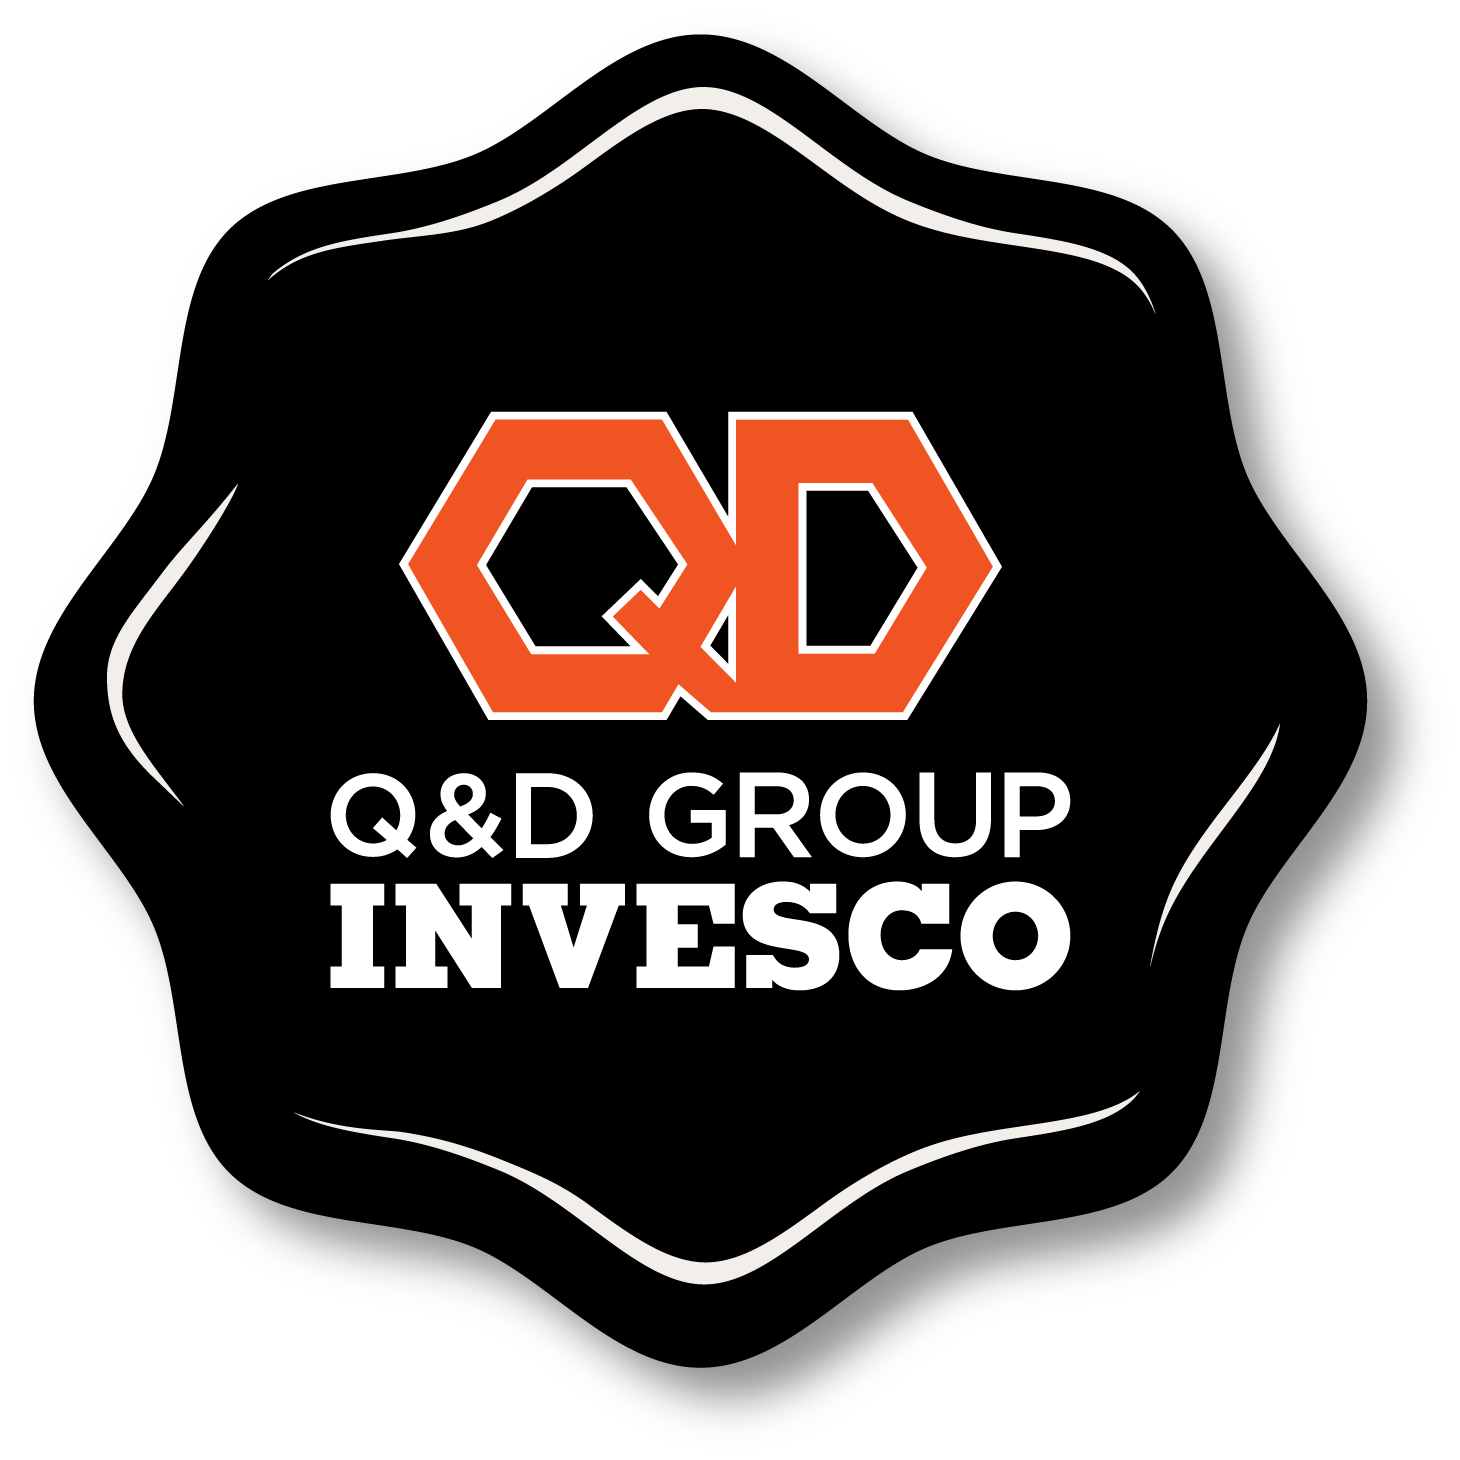 Q&D Group Invesco